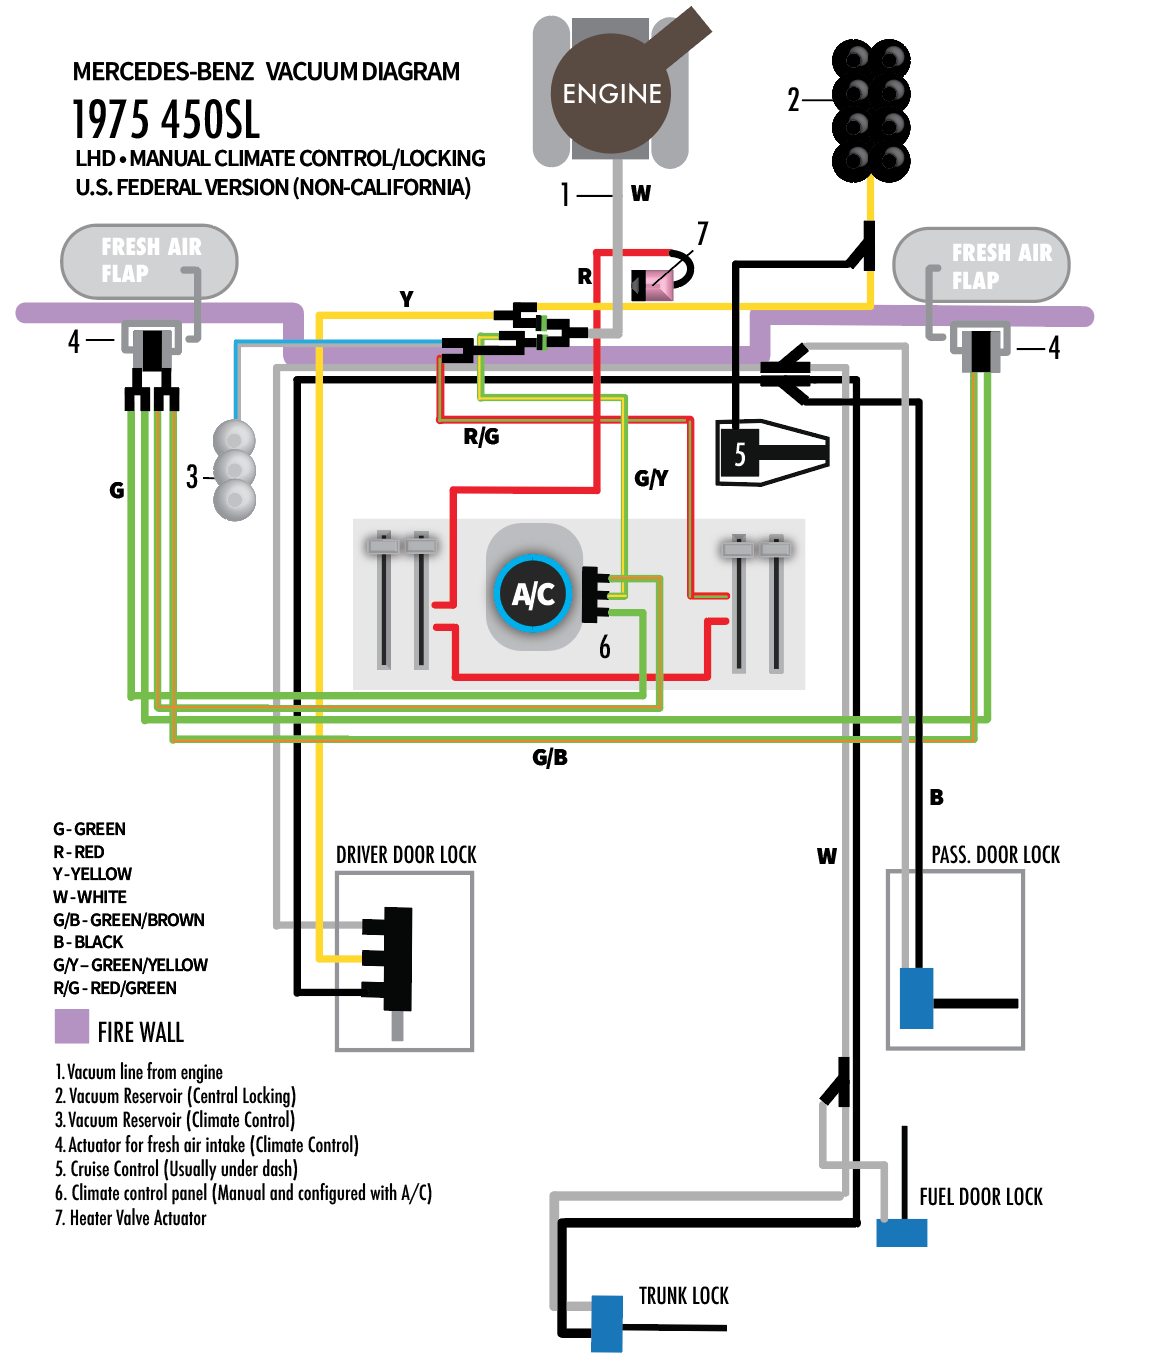 mercedes benz vacuum diagrams 72 mercedes benz wiring diagrams mercedes-benz w123 and r107 diy: mercedes vacuum diagram #4